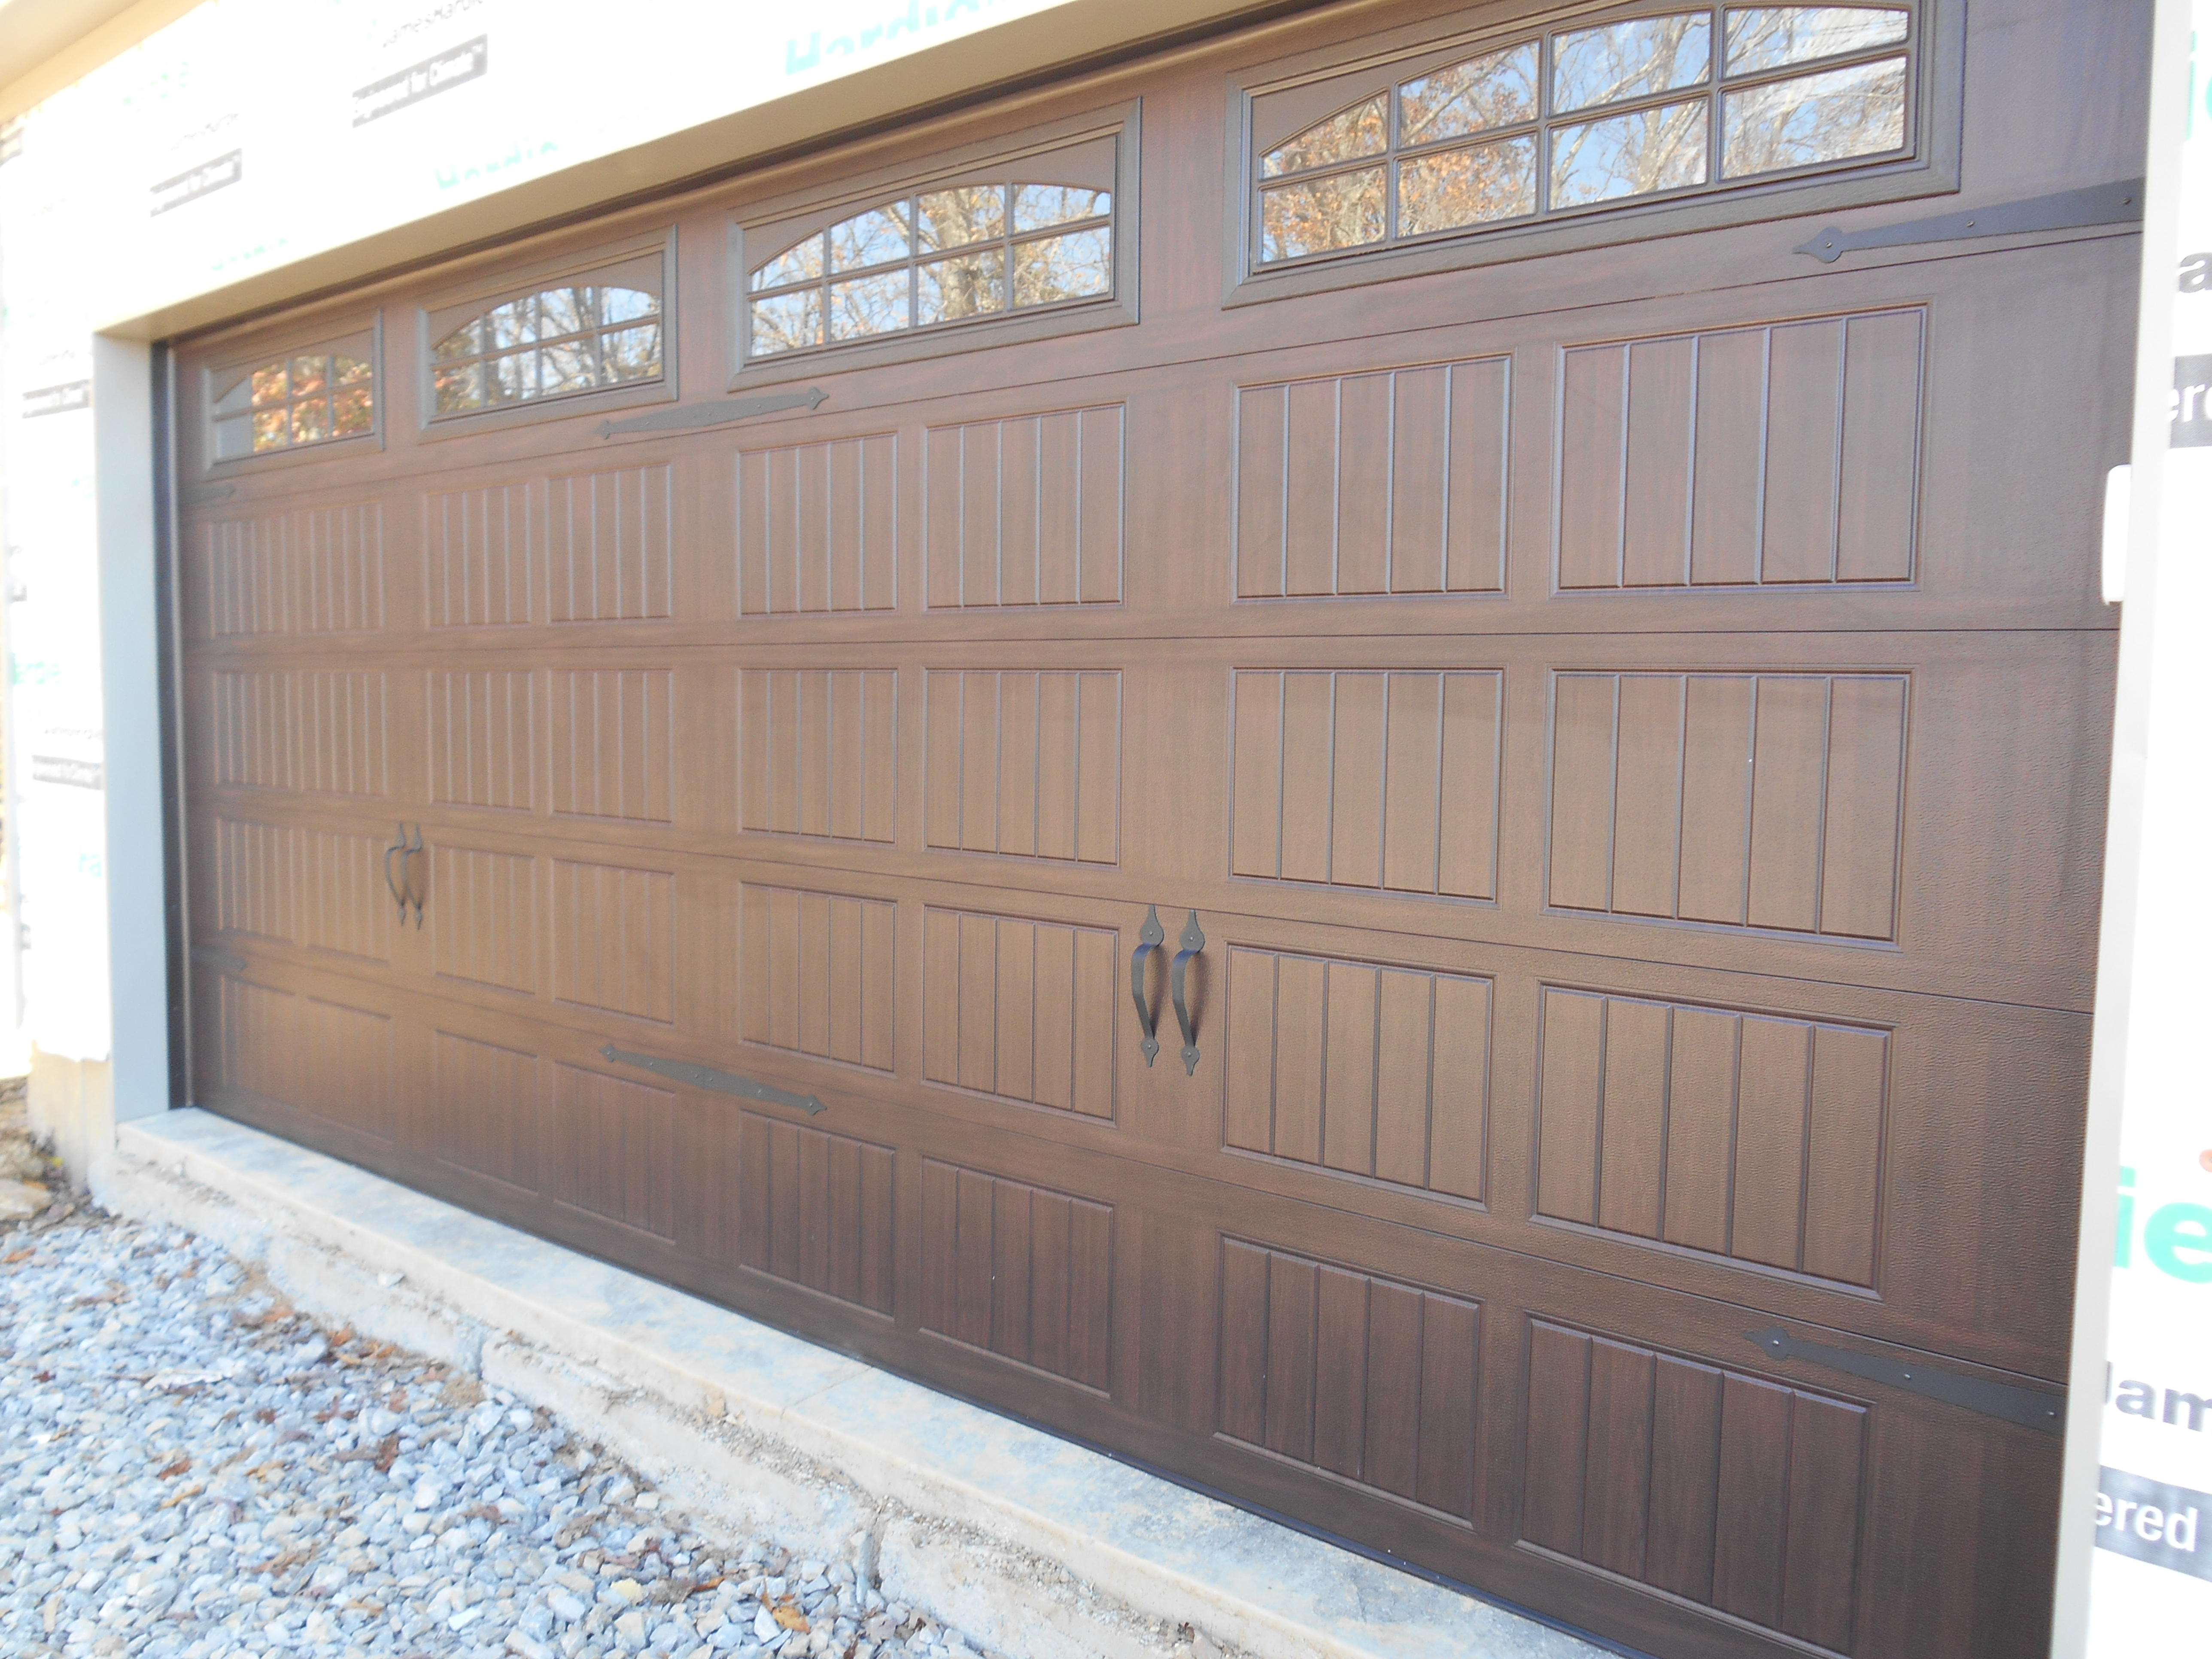 Thermacore Collection 199 Series Color: Walnut Wood Grain Stockton II  Window Trim